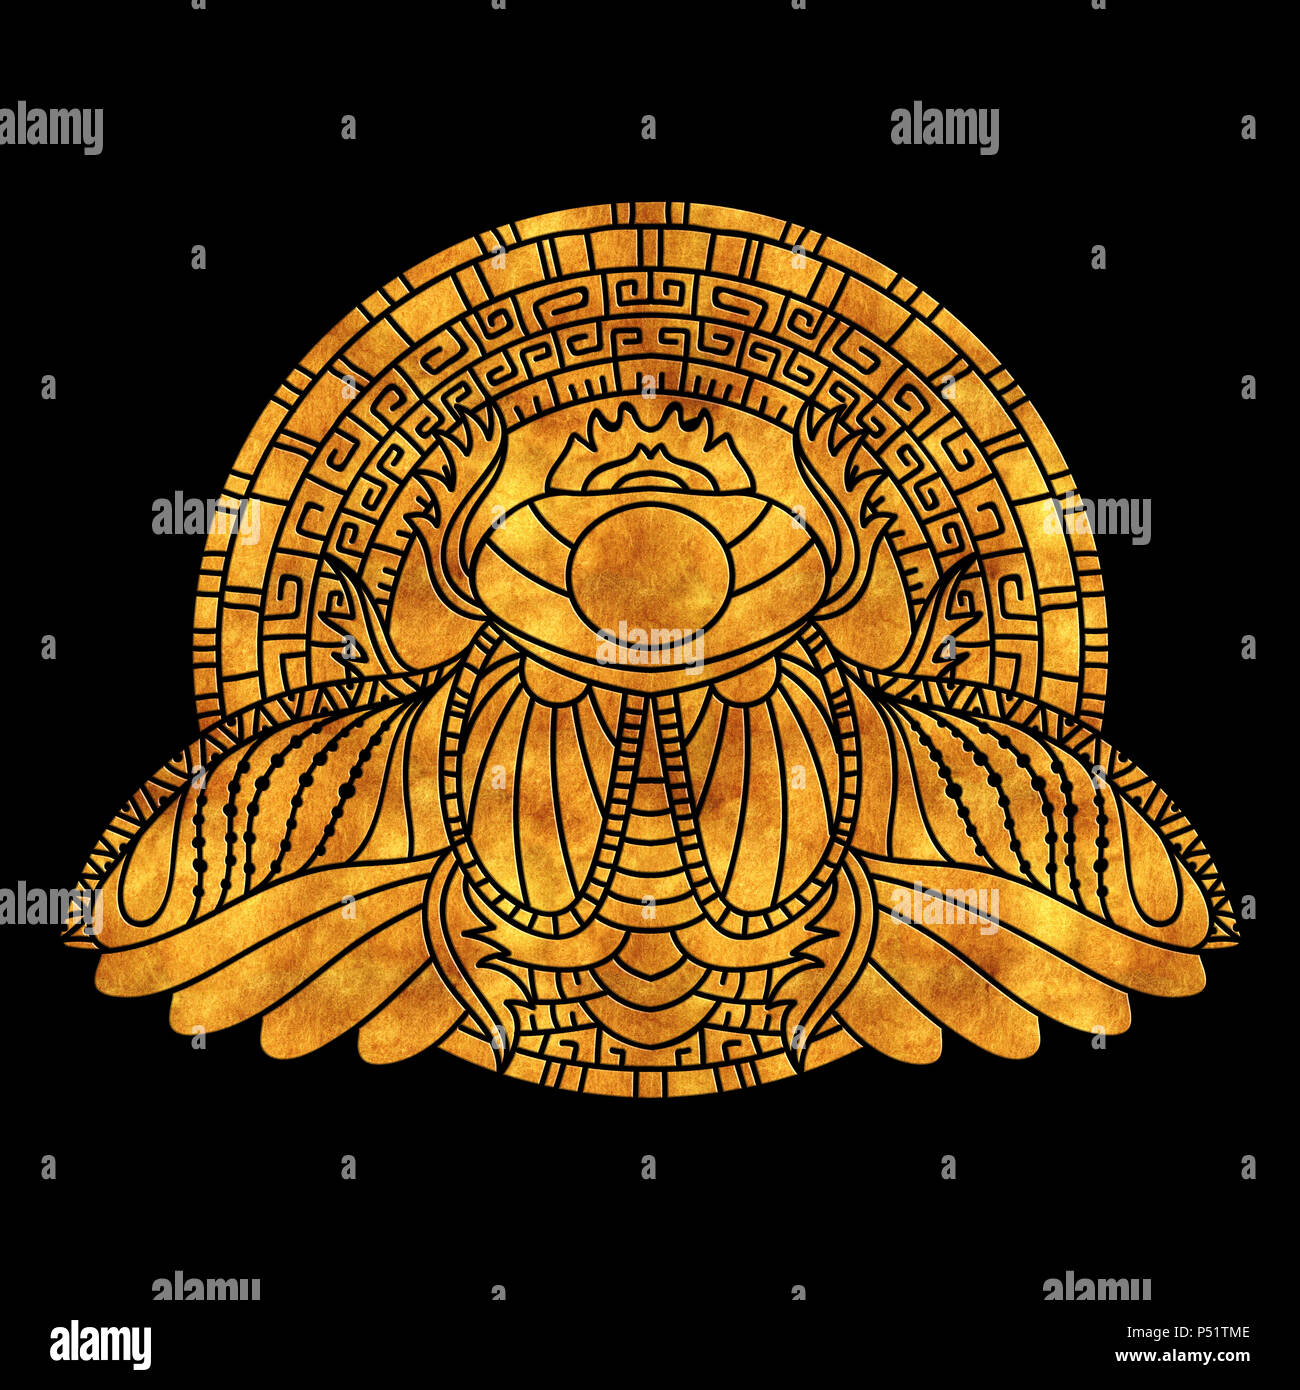 Egyptian Scarab Symbol Of Pharaoh Gods Ra Sun Mythology T Shirt